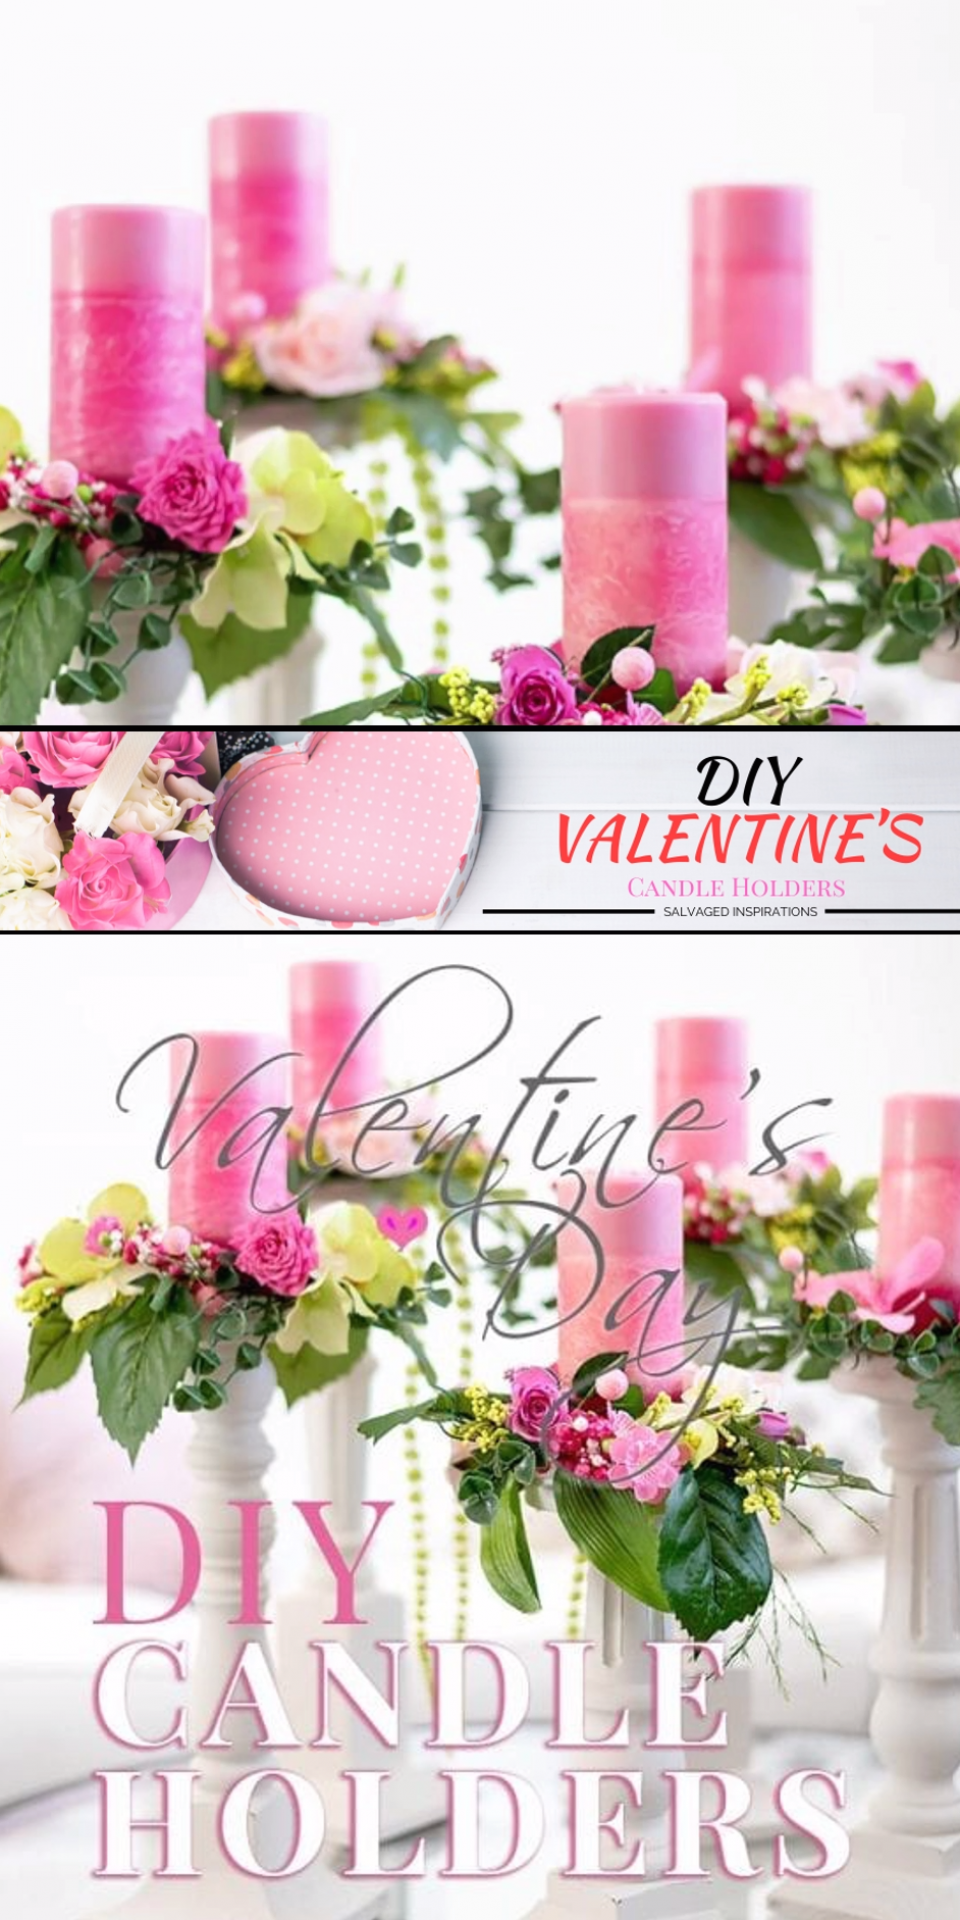 I LOVE easy DIY projects that make a HUGE impact   With Valentine   s Day approaching fast  I thought it would be fun to create some romantic DIY Wooden Candle Holders out of salvaged chair legs   Wait until you see what I used for the decorative candle rings  I   m impressed with me       This was salvaging and using what I had on hand at it   s best  I   m treating myself to some donuts for thinking up this one   diy  siblog  upcyclingfurniture  candleholders  salvagedfurniture  valentinecraft